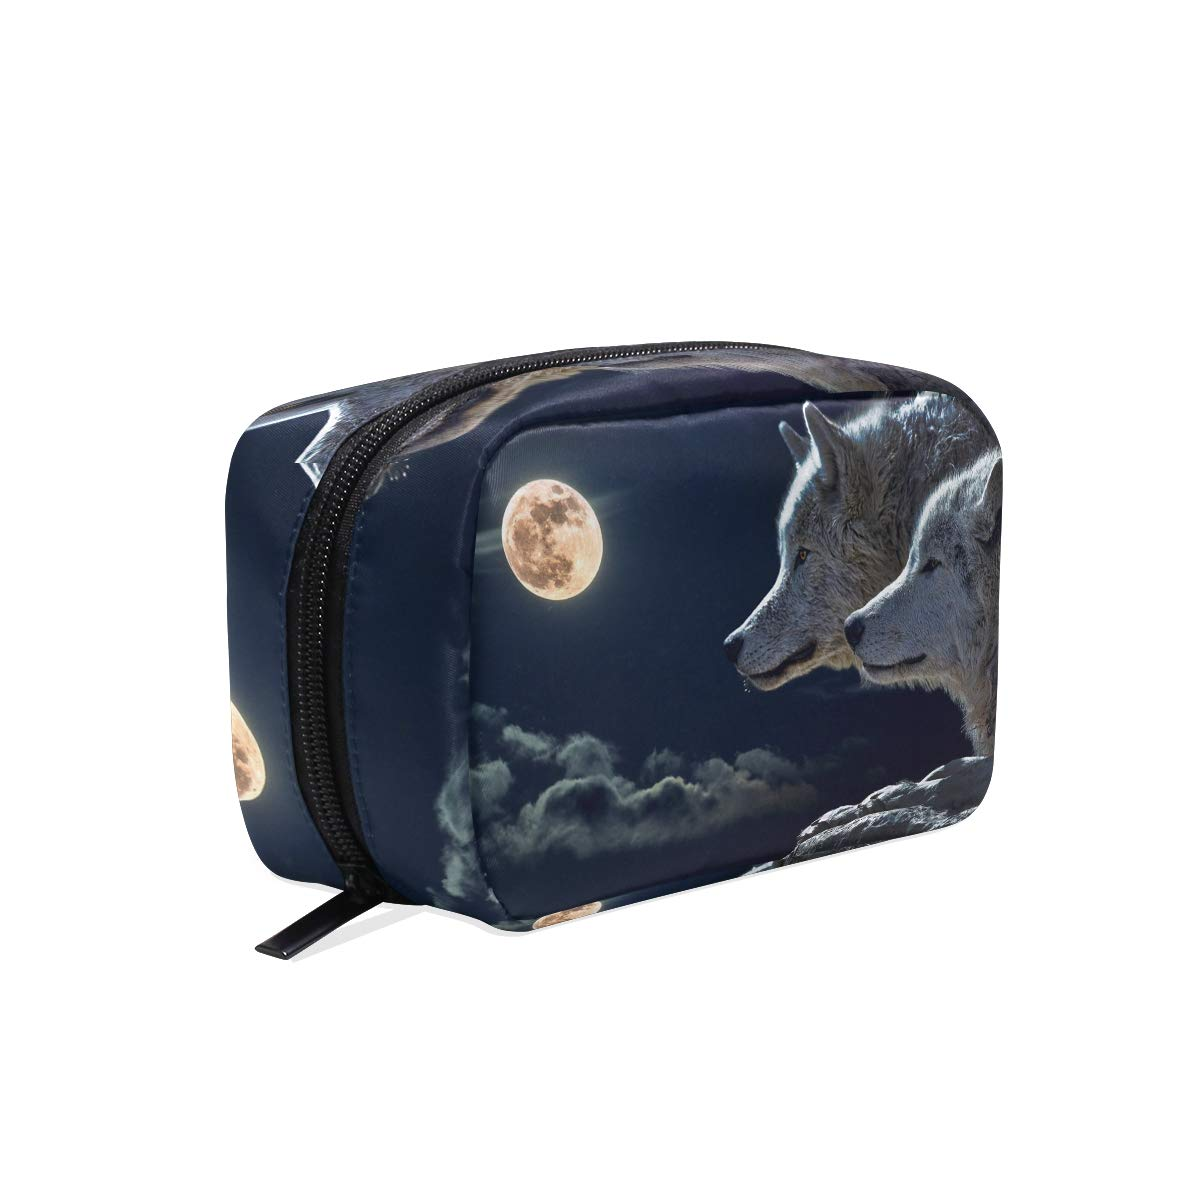 Wolf Travel Makeup Cosmetic Case Pouch Bag Zipper Portable Girl Women Cosmetic Organizer Storage Bags for Travel